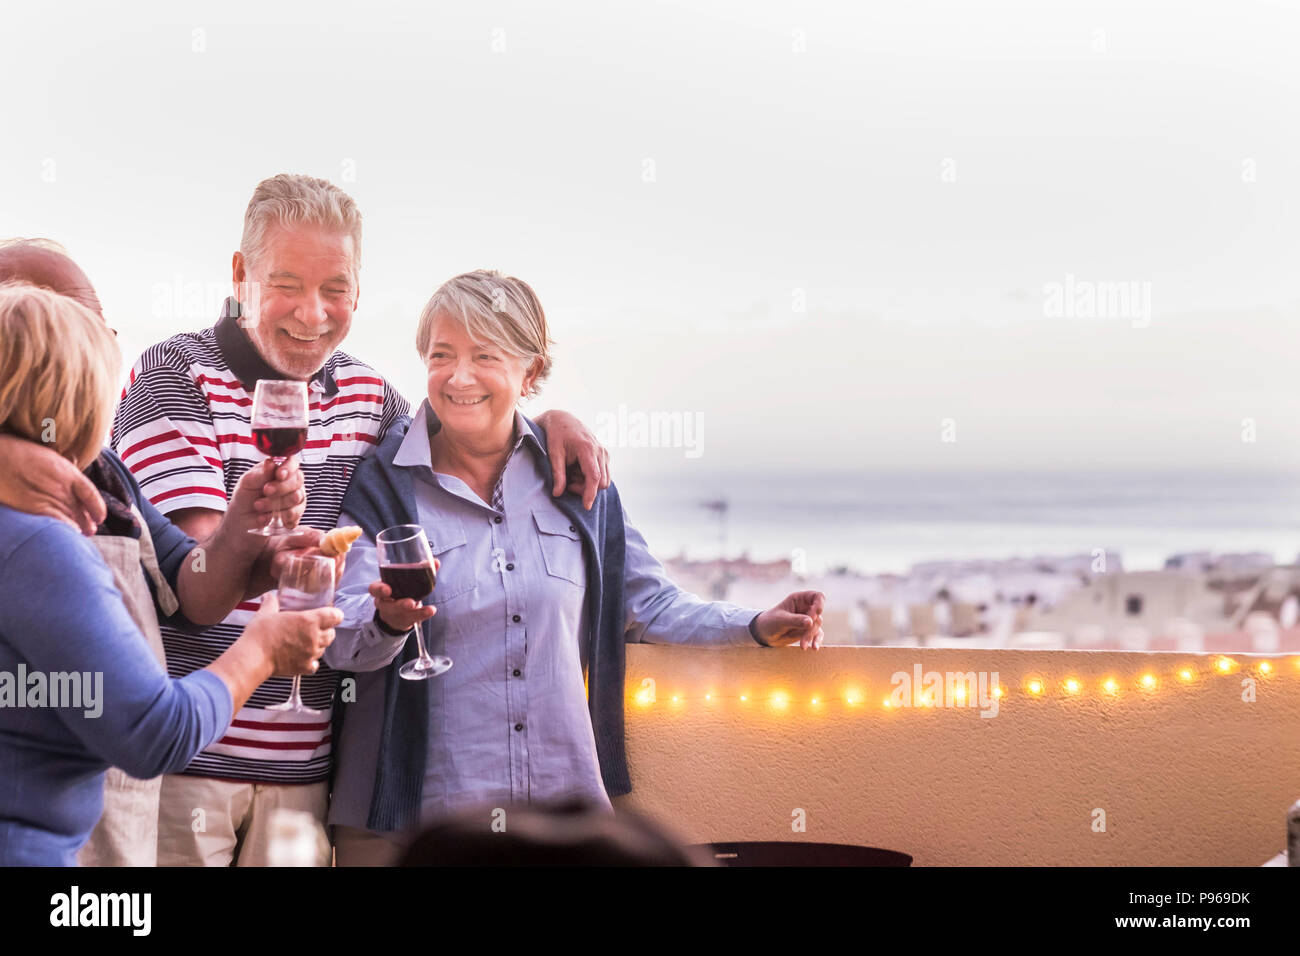 celebration event outdoor for a group of adult people. drkinking wine in the rooftop terrace with nice view on the background. happy lifestyle togethe - Stock Image